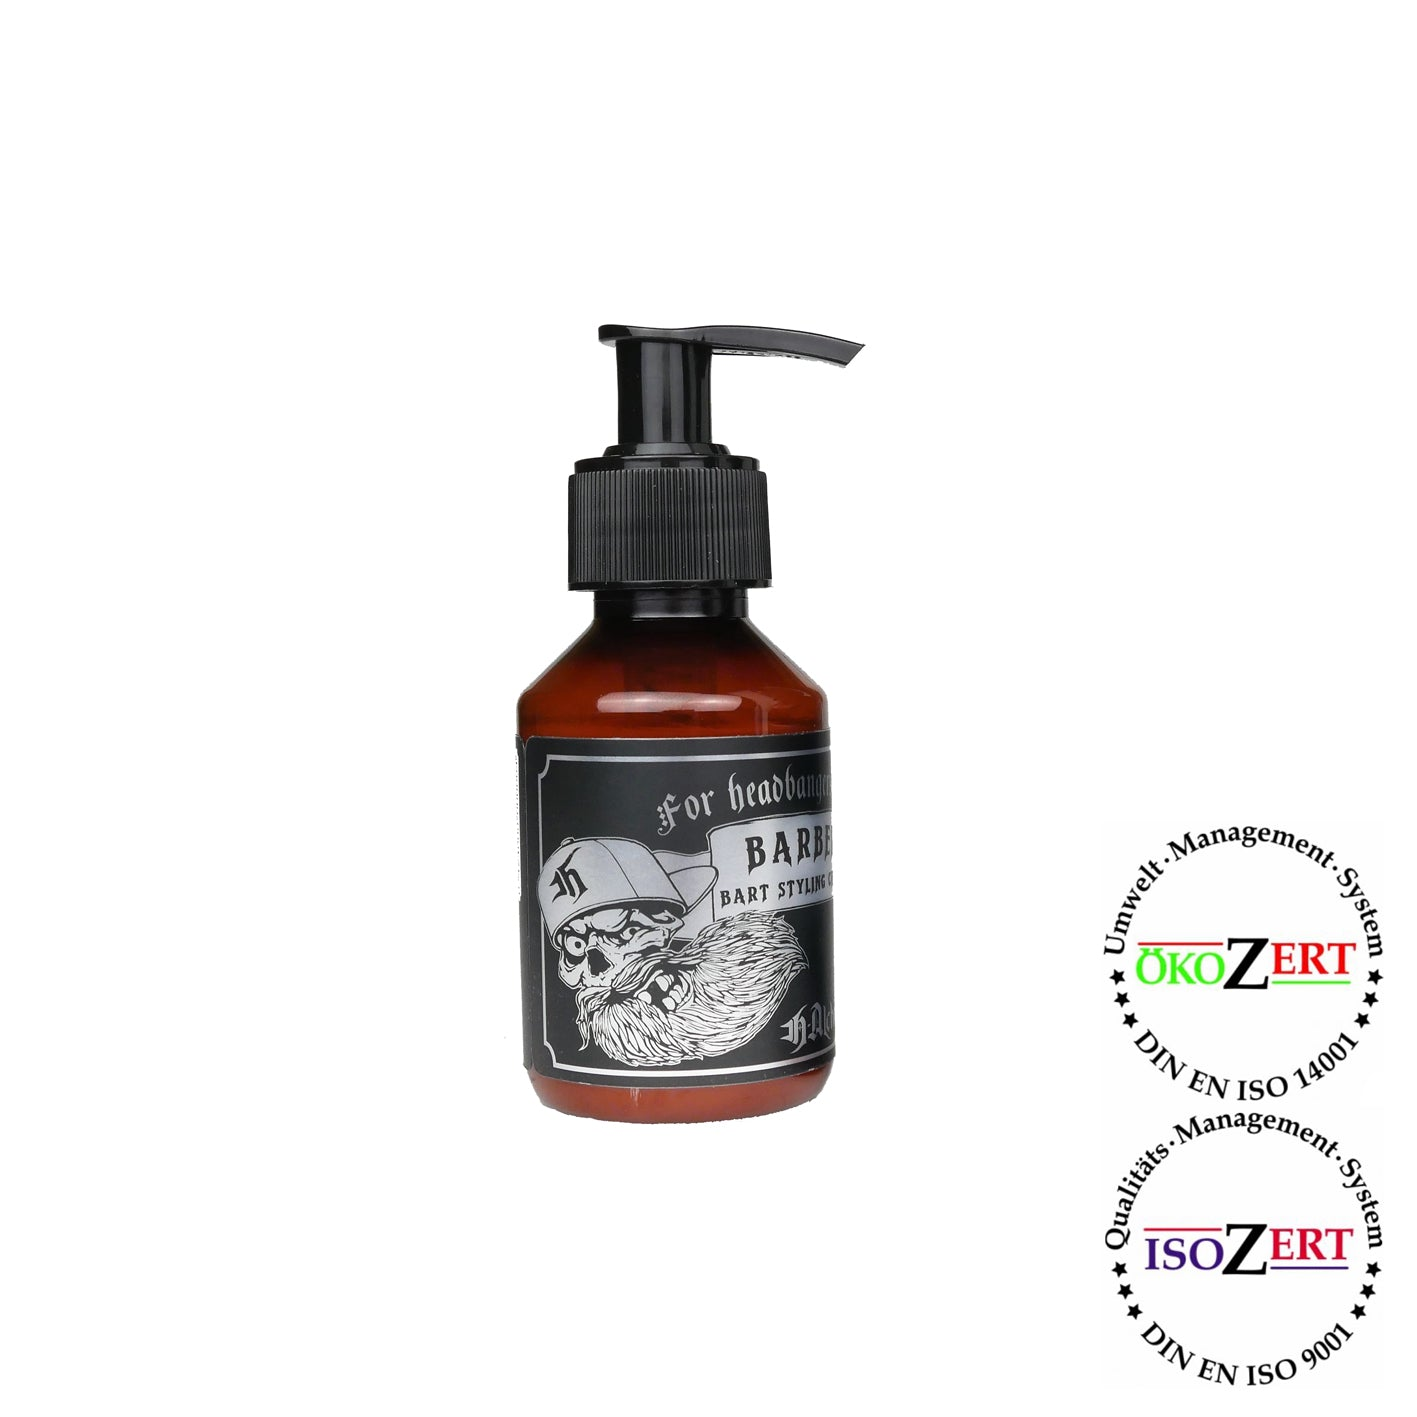 BARBER - Bart Styling Creme - H-Alchemy